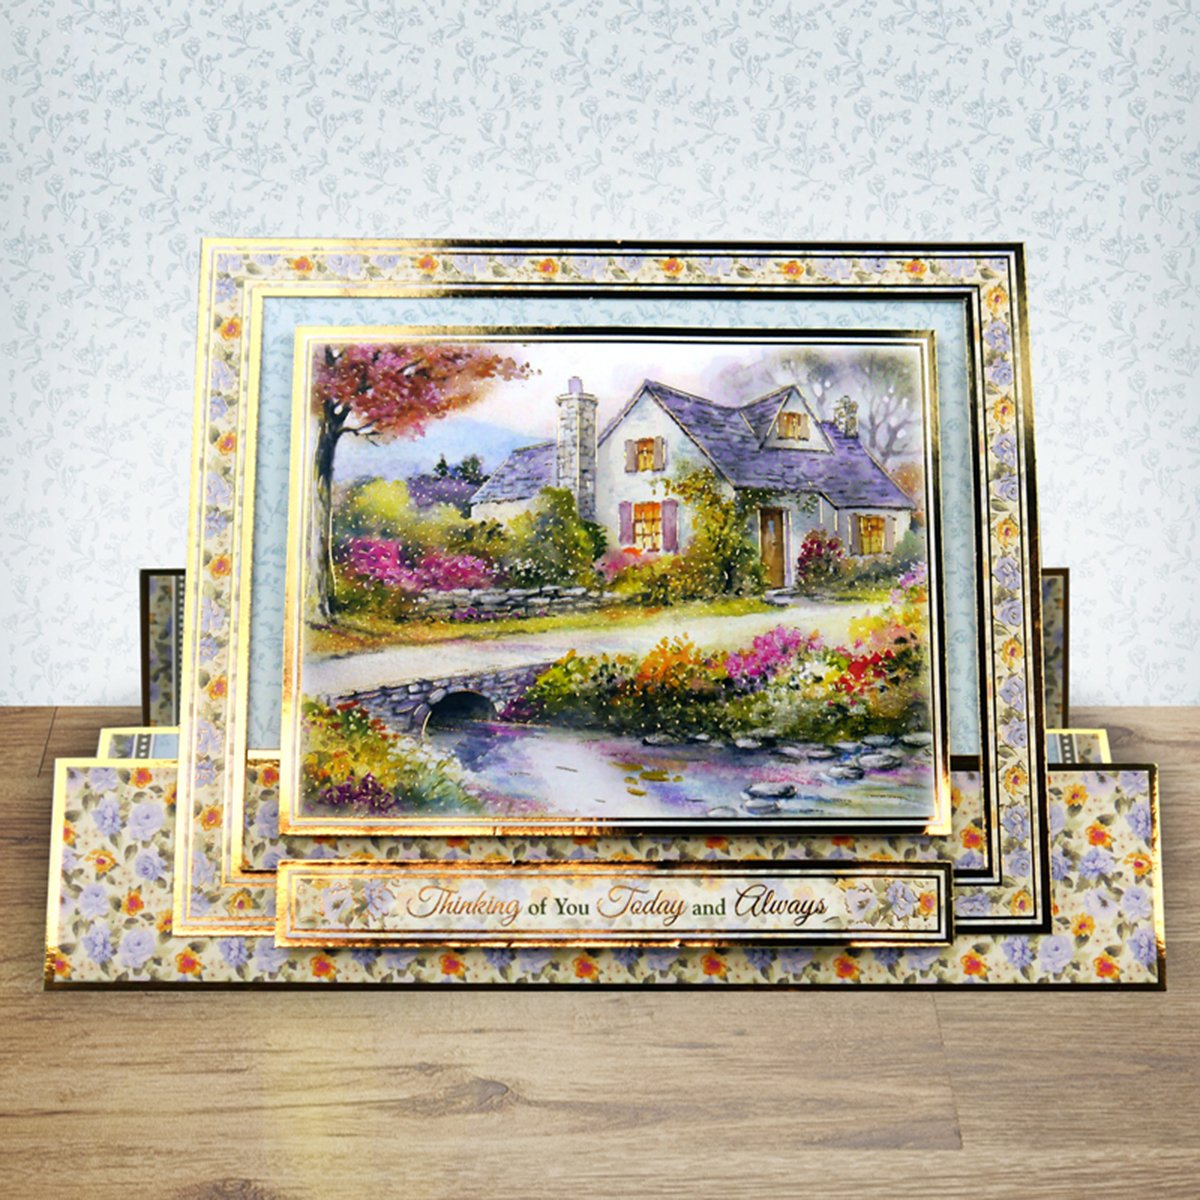 Hunkydory primrose Lane Luxury Collection with 8 Topper Sets /& 2 Specialty Card Kits